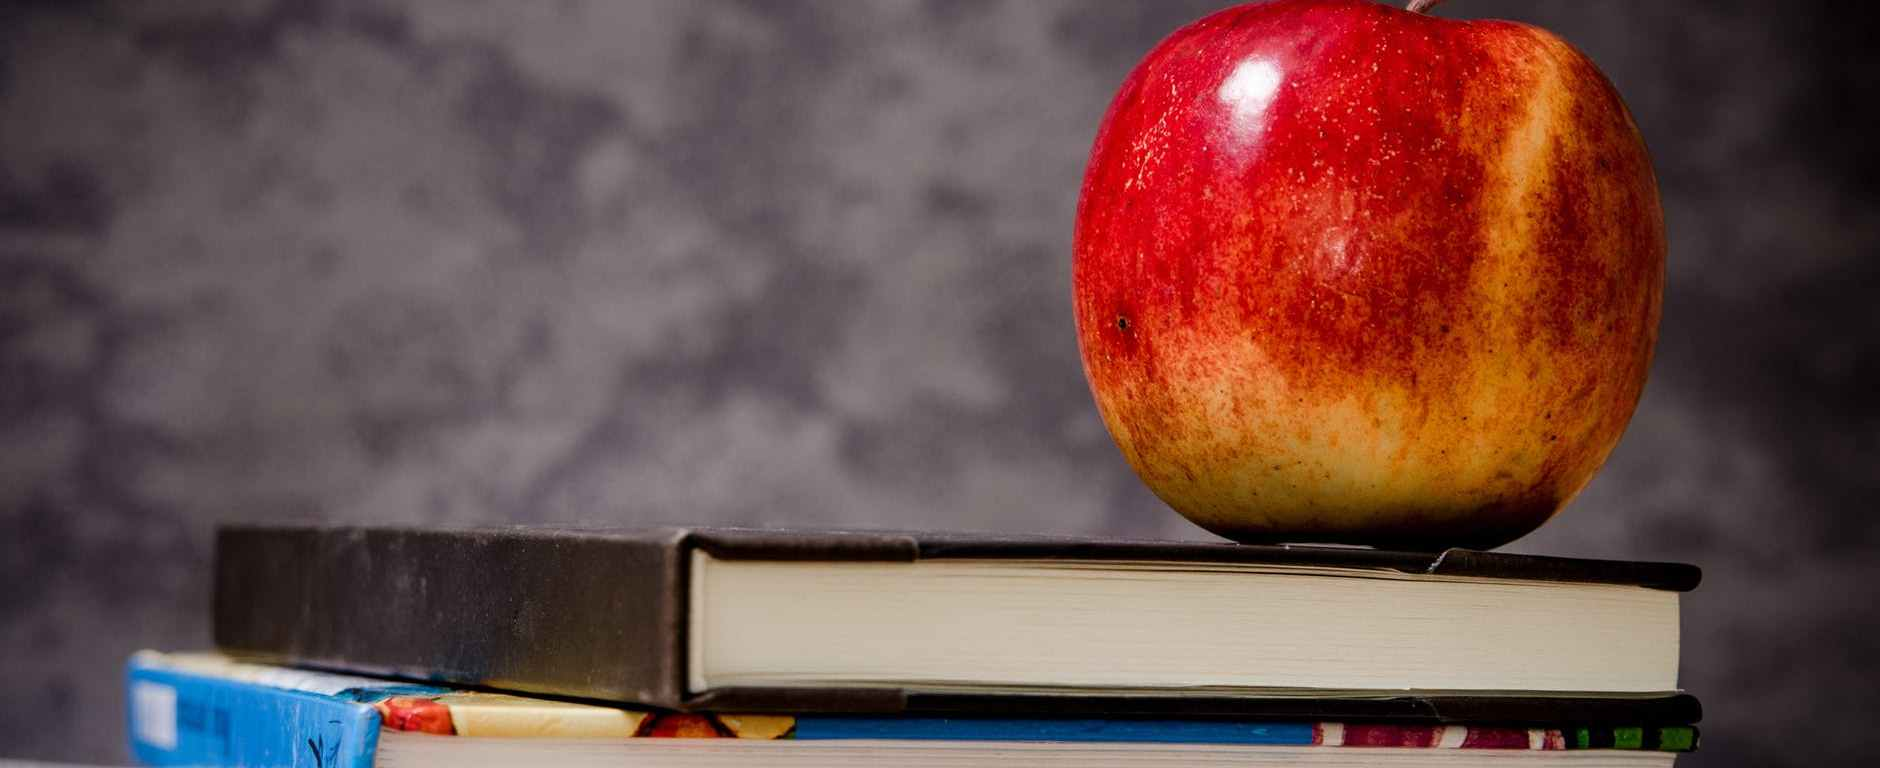 Time for school with books and an apple.